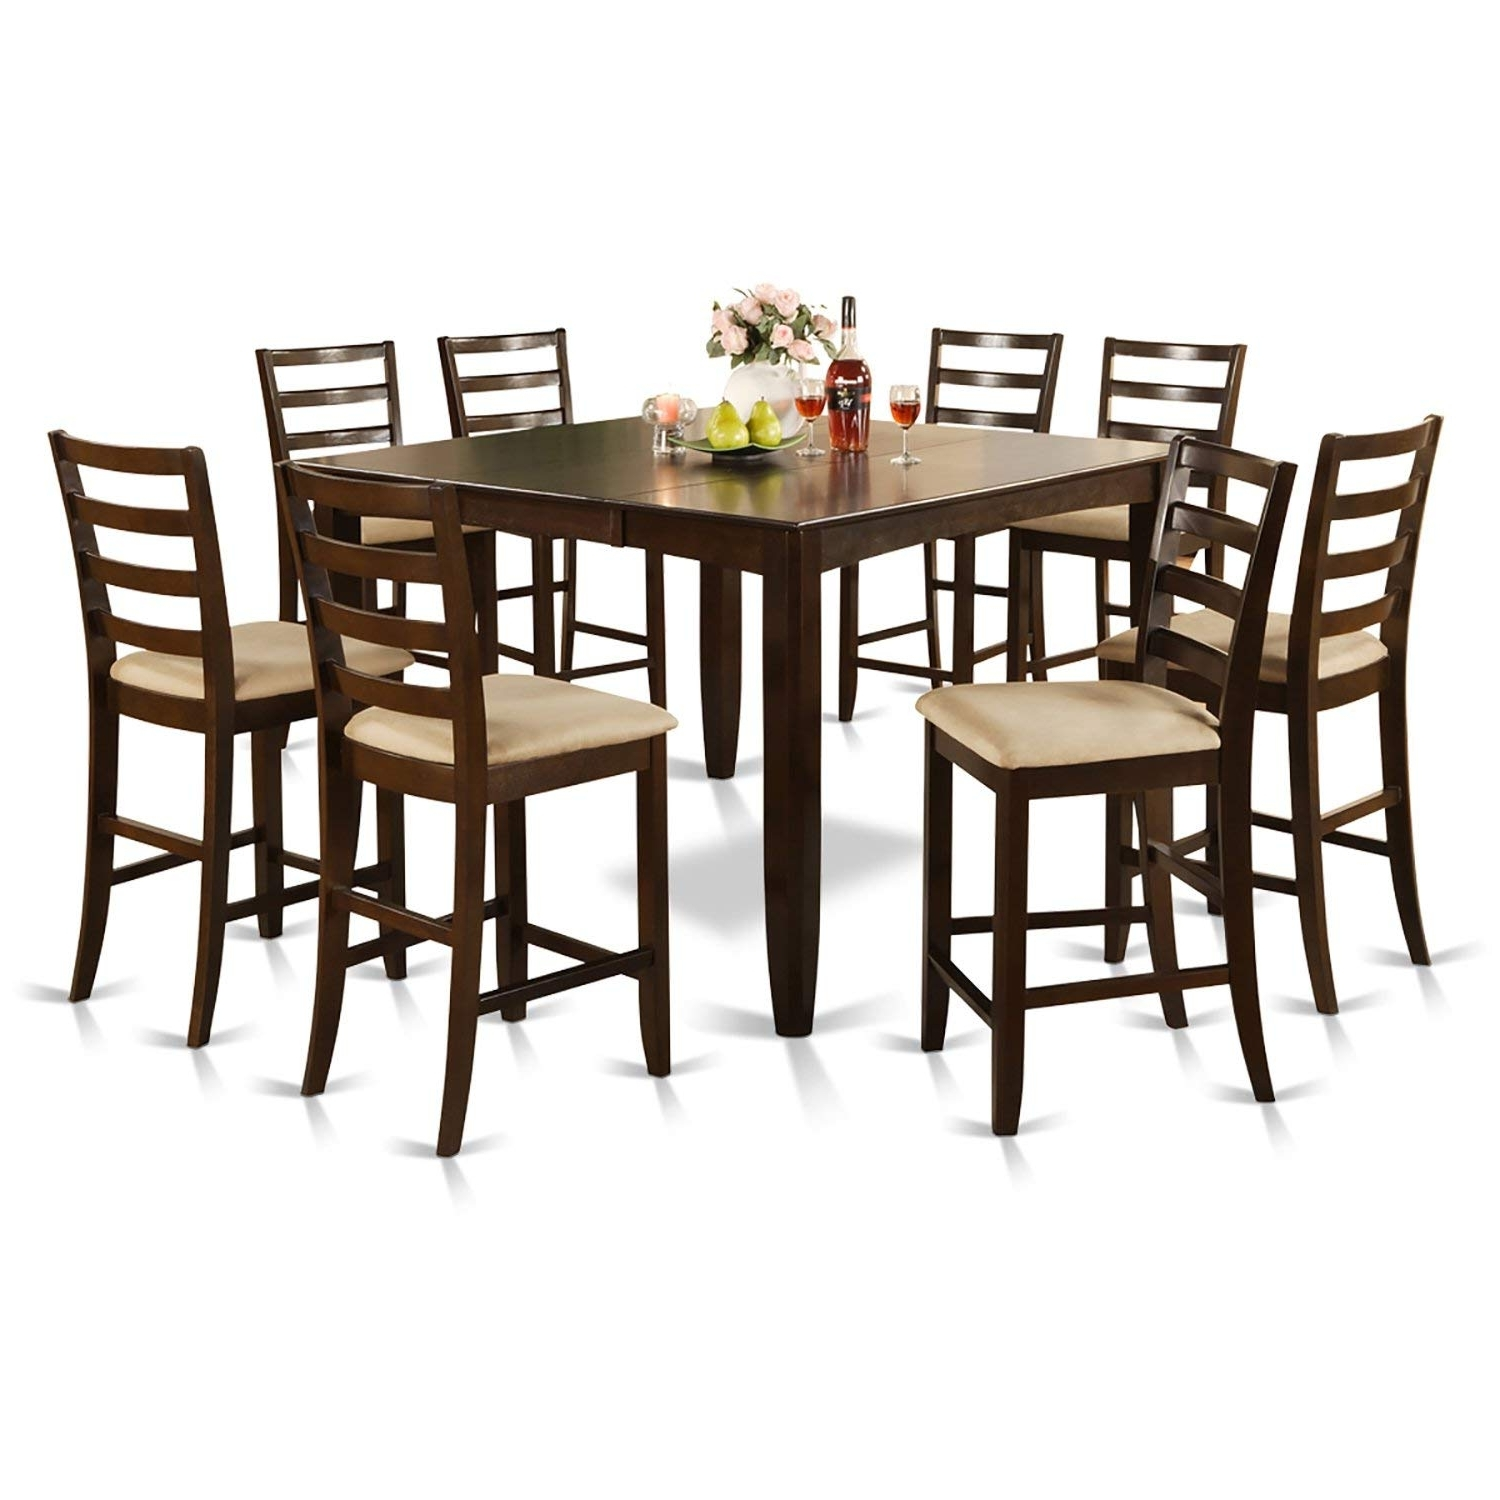 Rocco 7 Piece Extension Dining Sets Throughout Fashionable Amazon: East West Furniture Fair9 Cap C 9 Piece Counter Height (View 20 of 25)